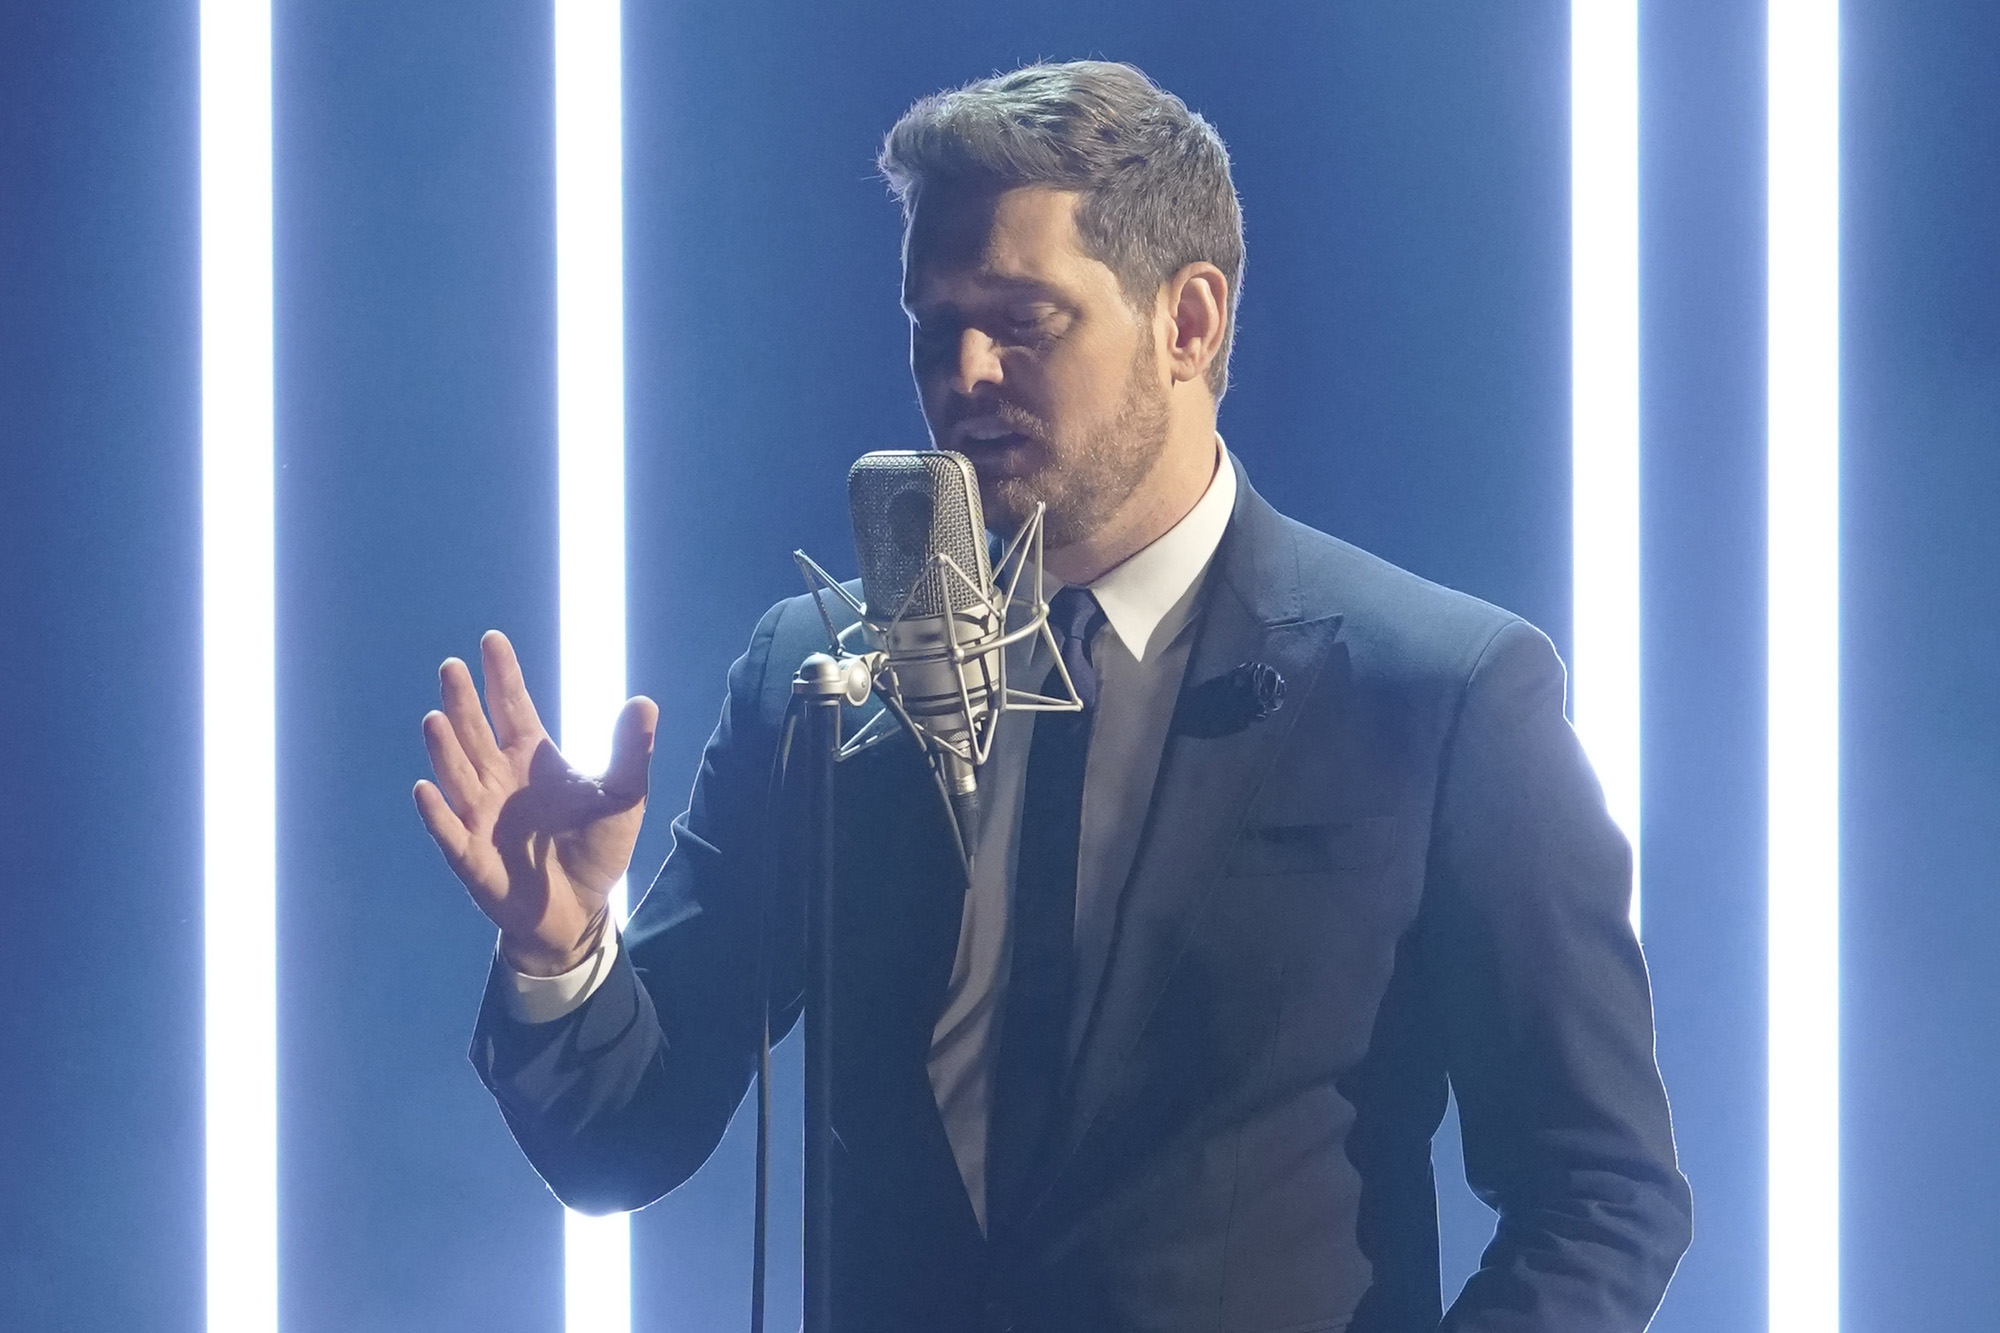 Michael Buble Christmas 2021 Ctv Michael Buble Sets Seventh Music Special At Nbc Deadline